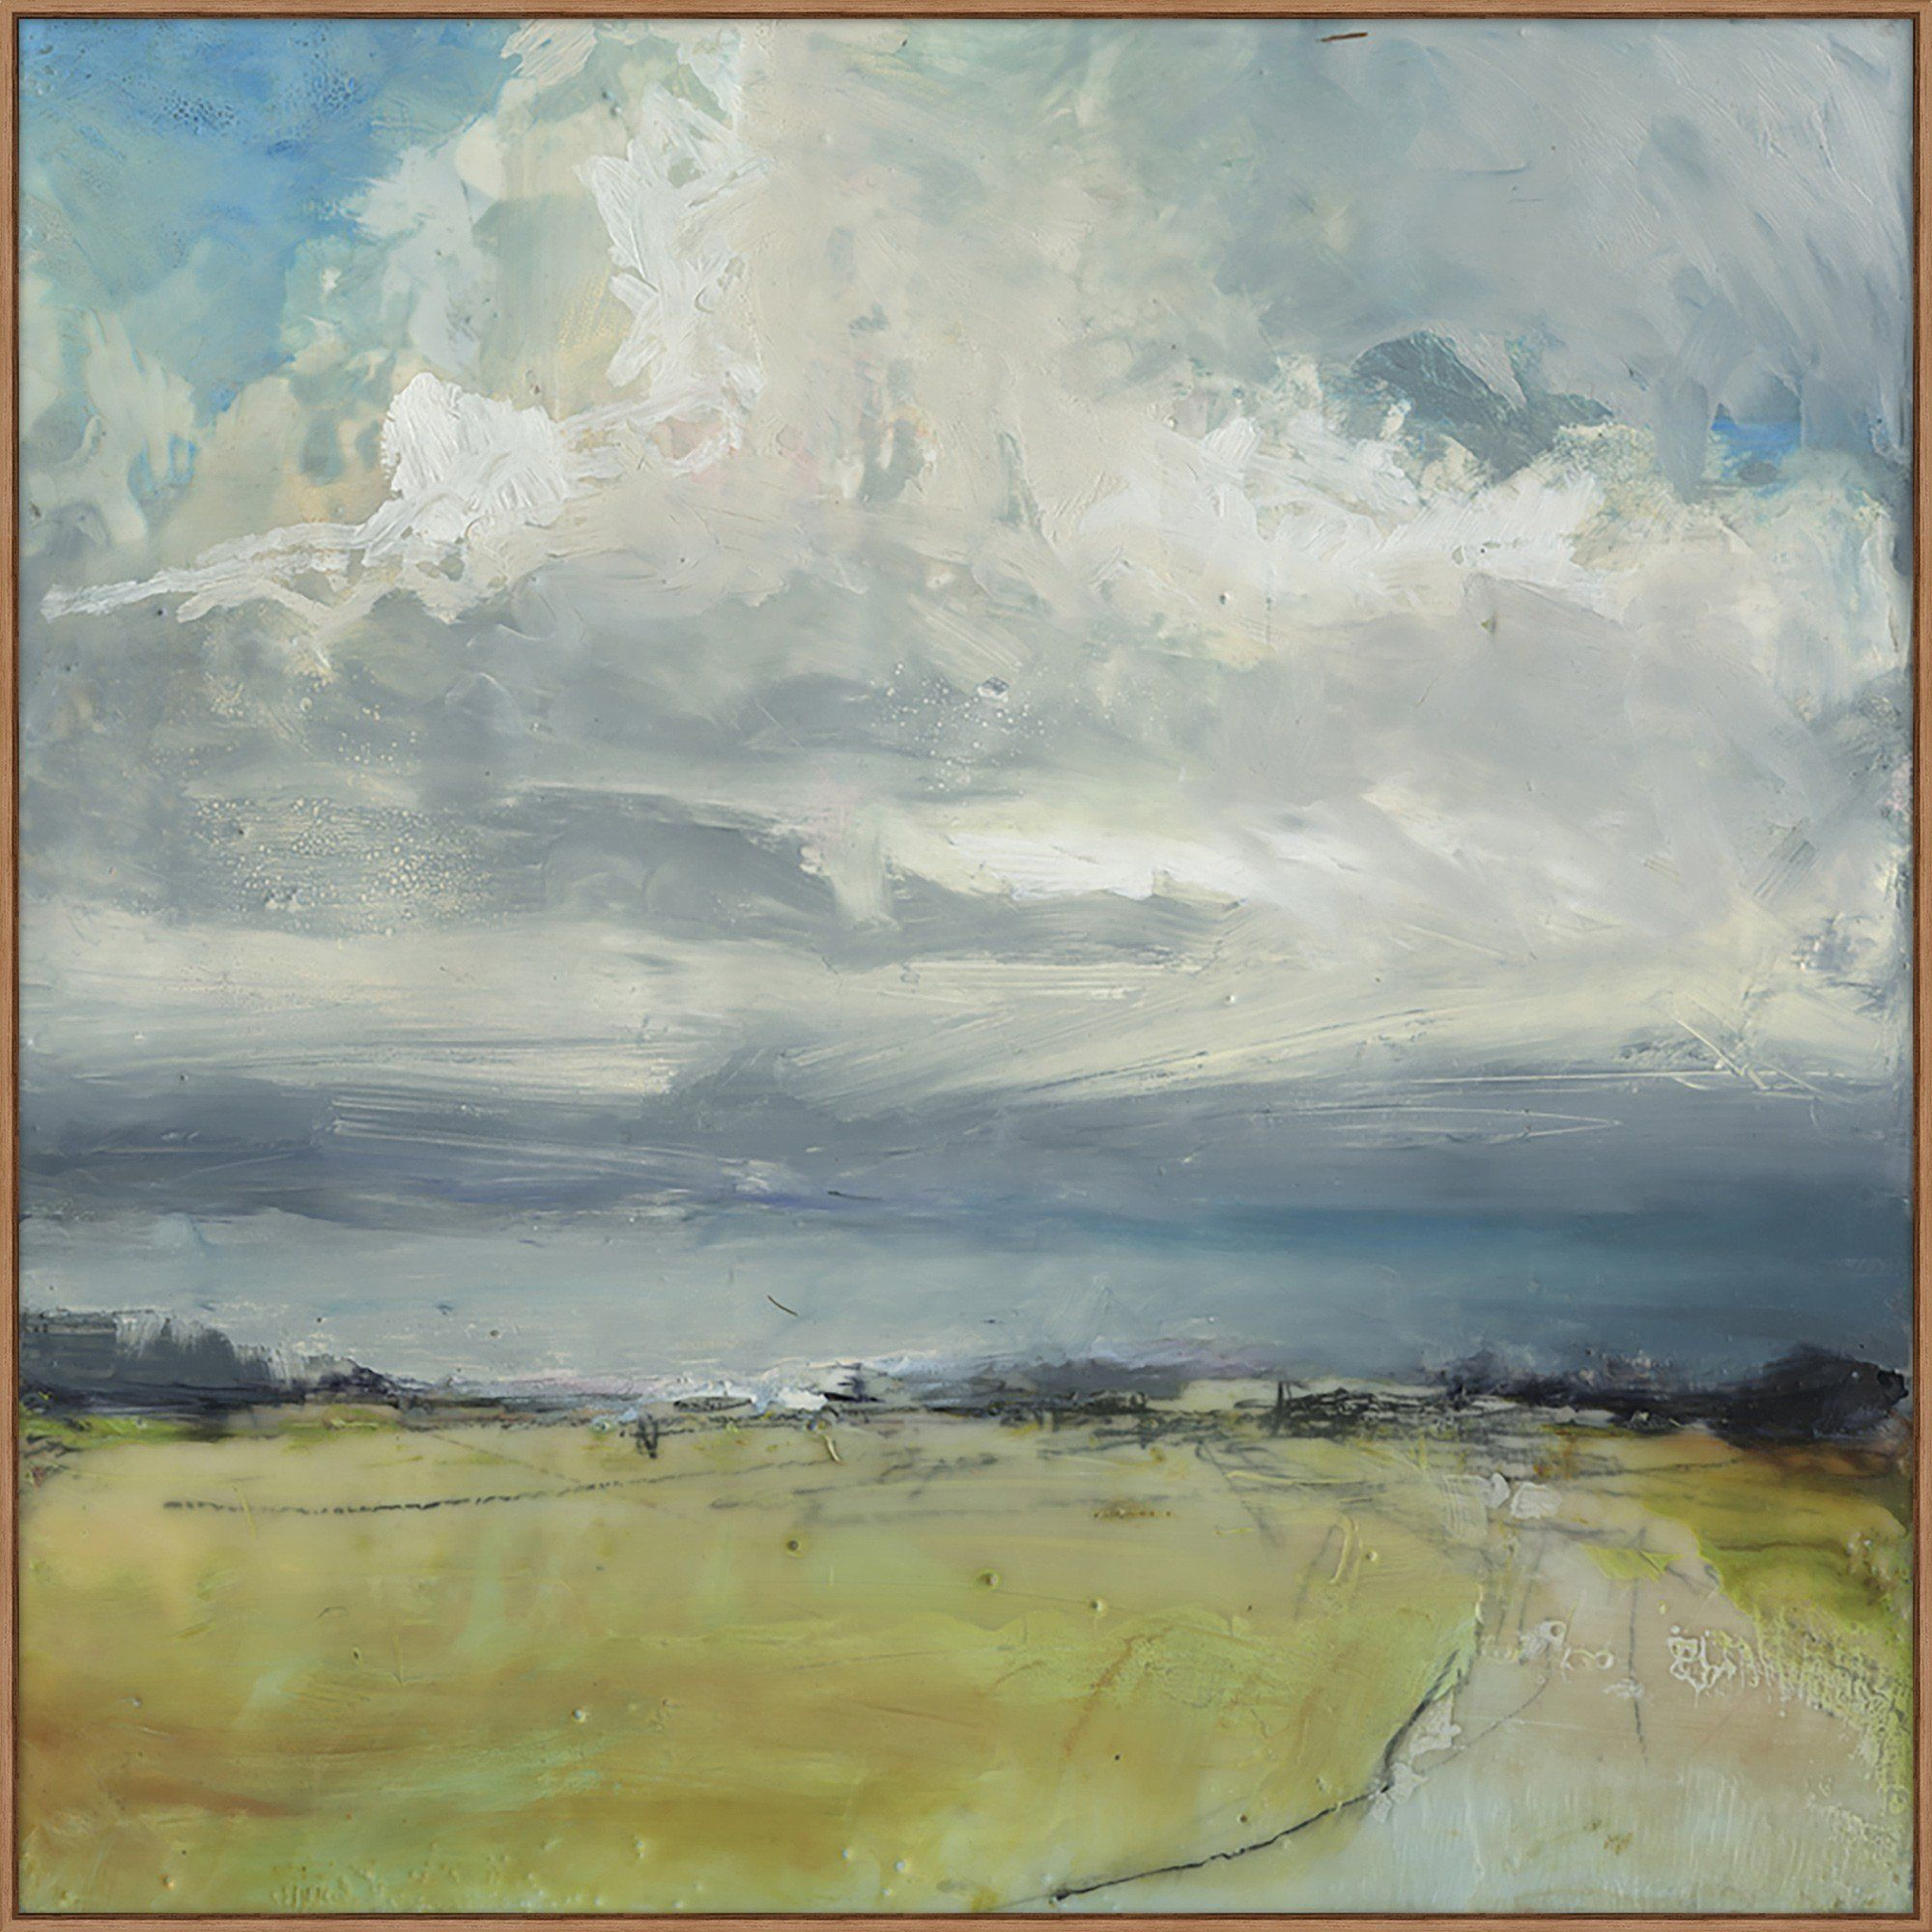 This Painting Is A Fresh Take On The Traditional Landscape It Features Painterly Strokes And A L Landscape Art Landscape Paintings Abstract Landscape Painting